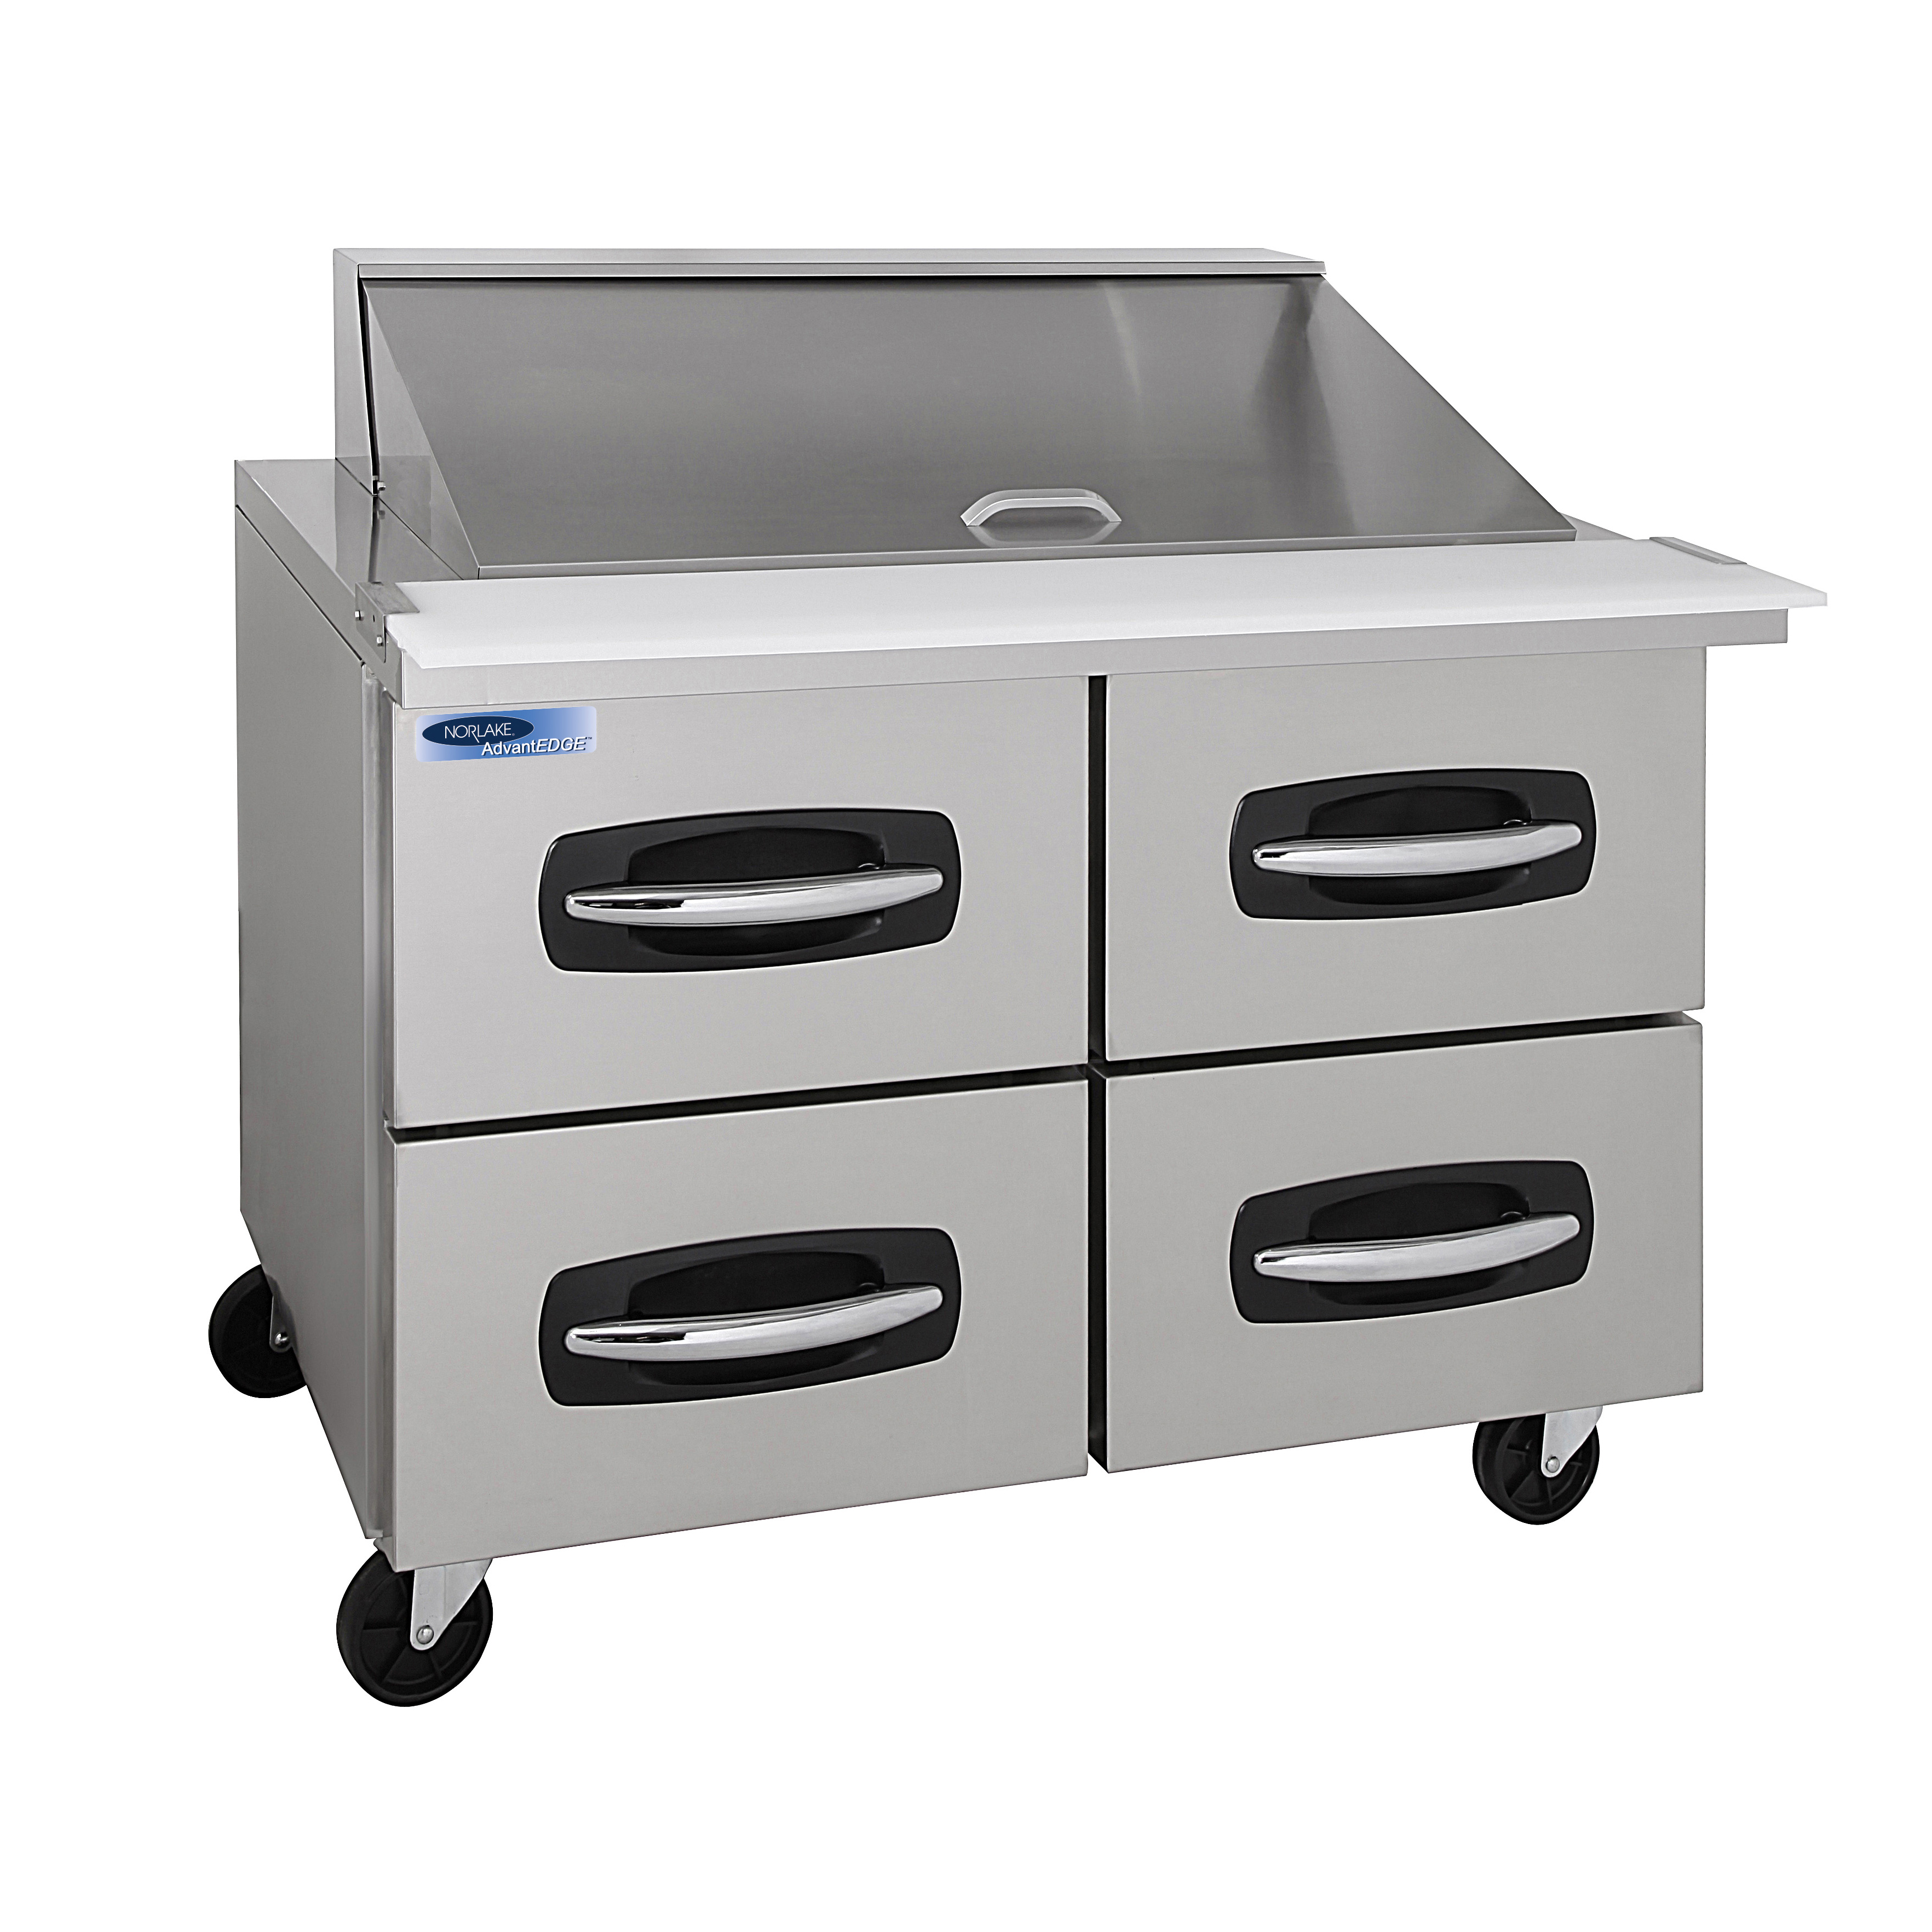 Nor-Lake NLSMP48-18A-001B refrigerated counter, mega top sandwich / salad unit